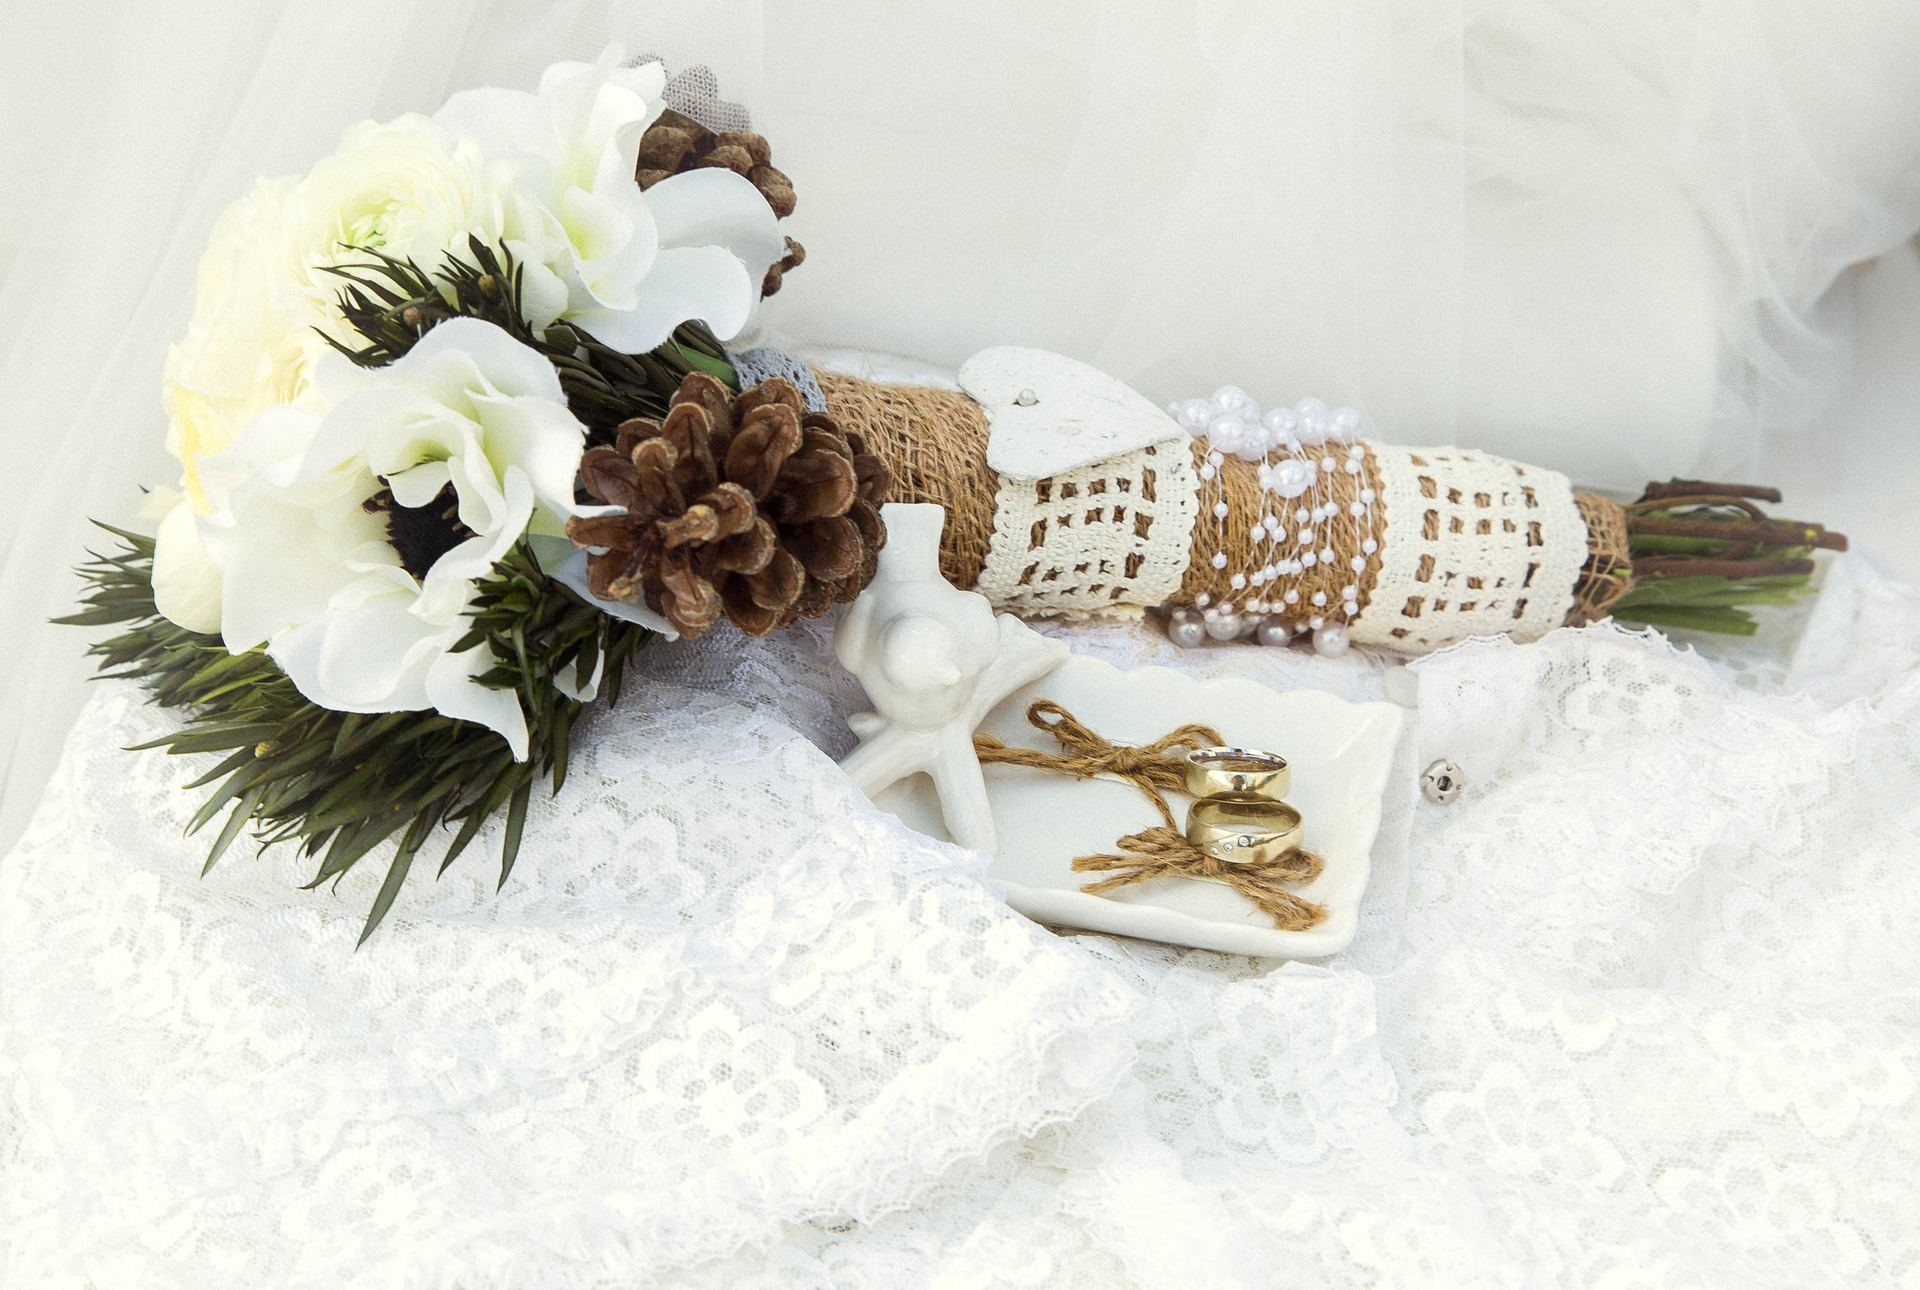 Winter wedding bouquet with pine, pine cones, and white flowers wrapped in lace and burlap